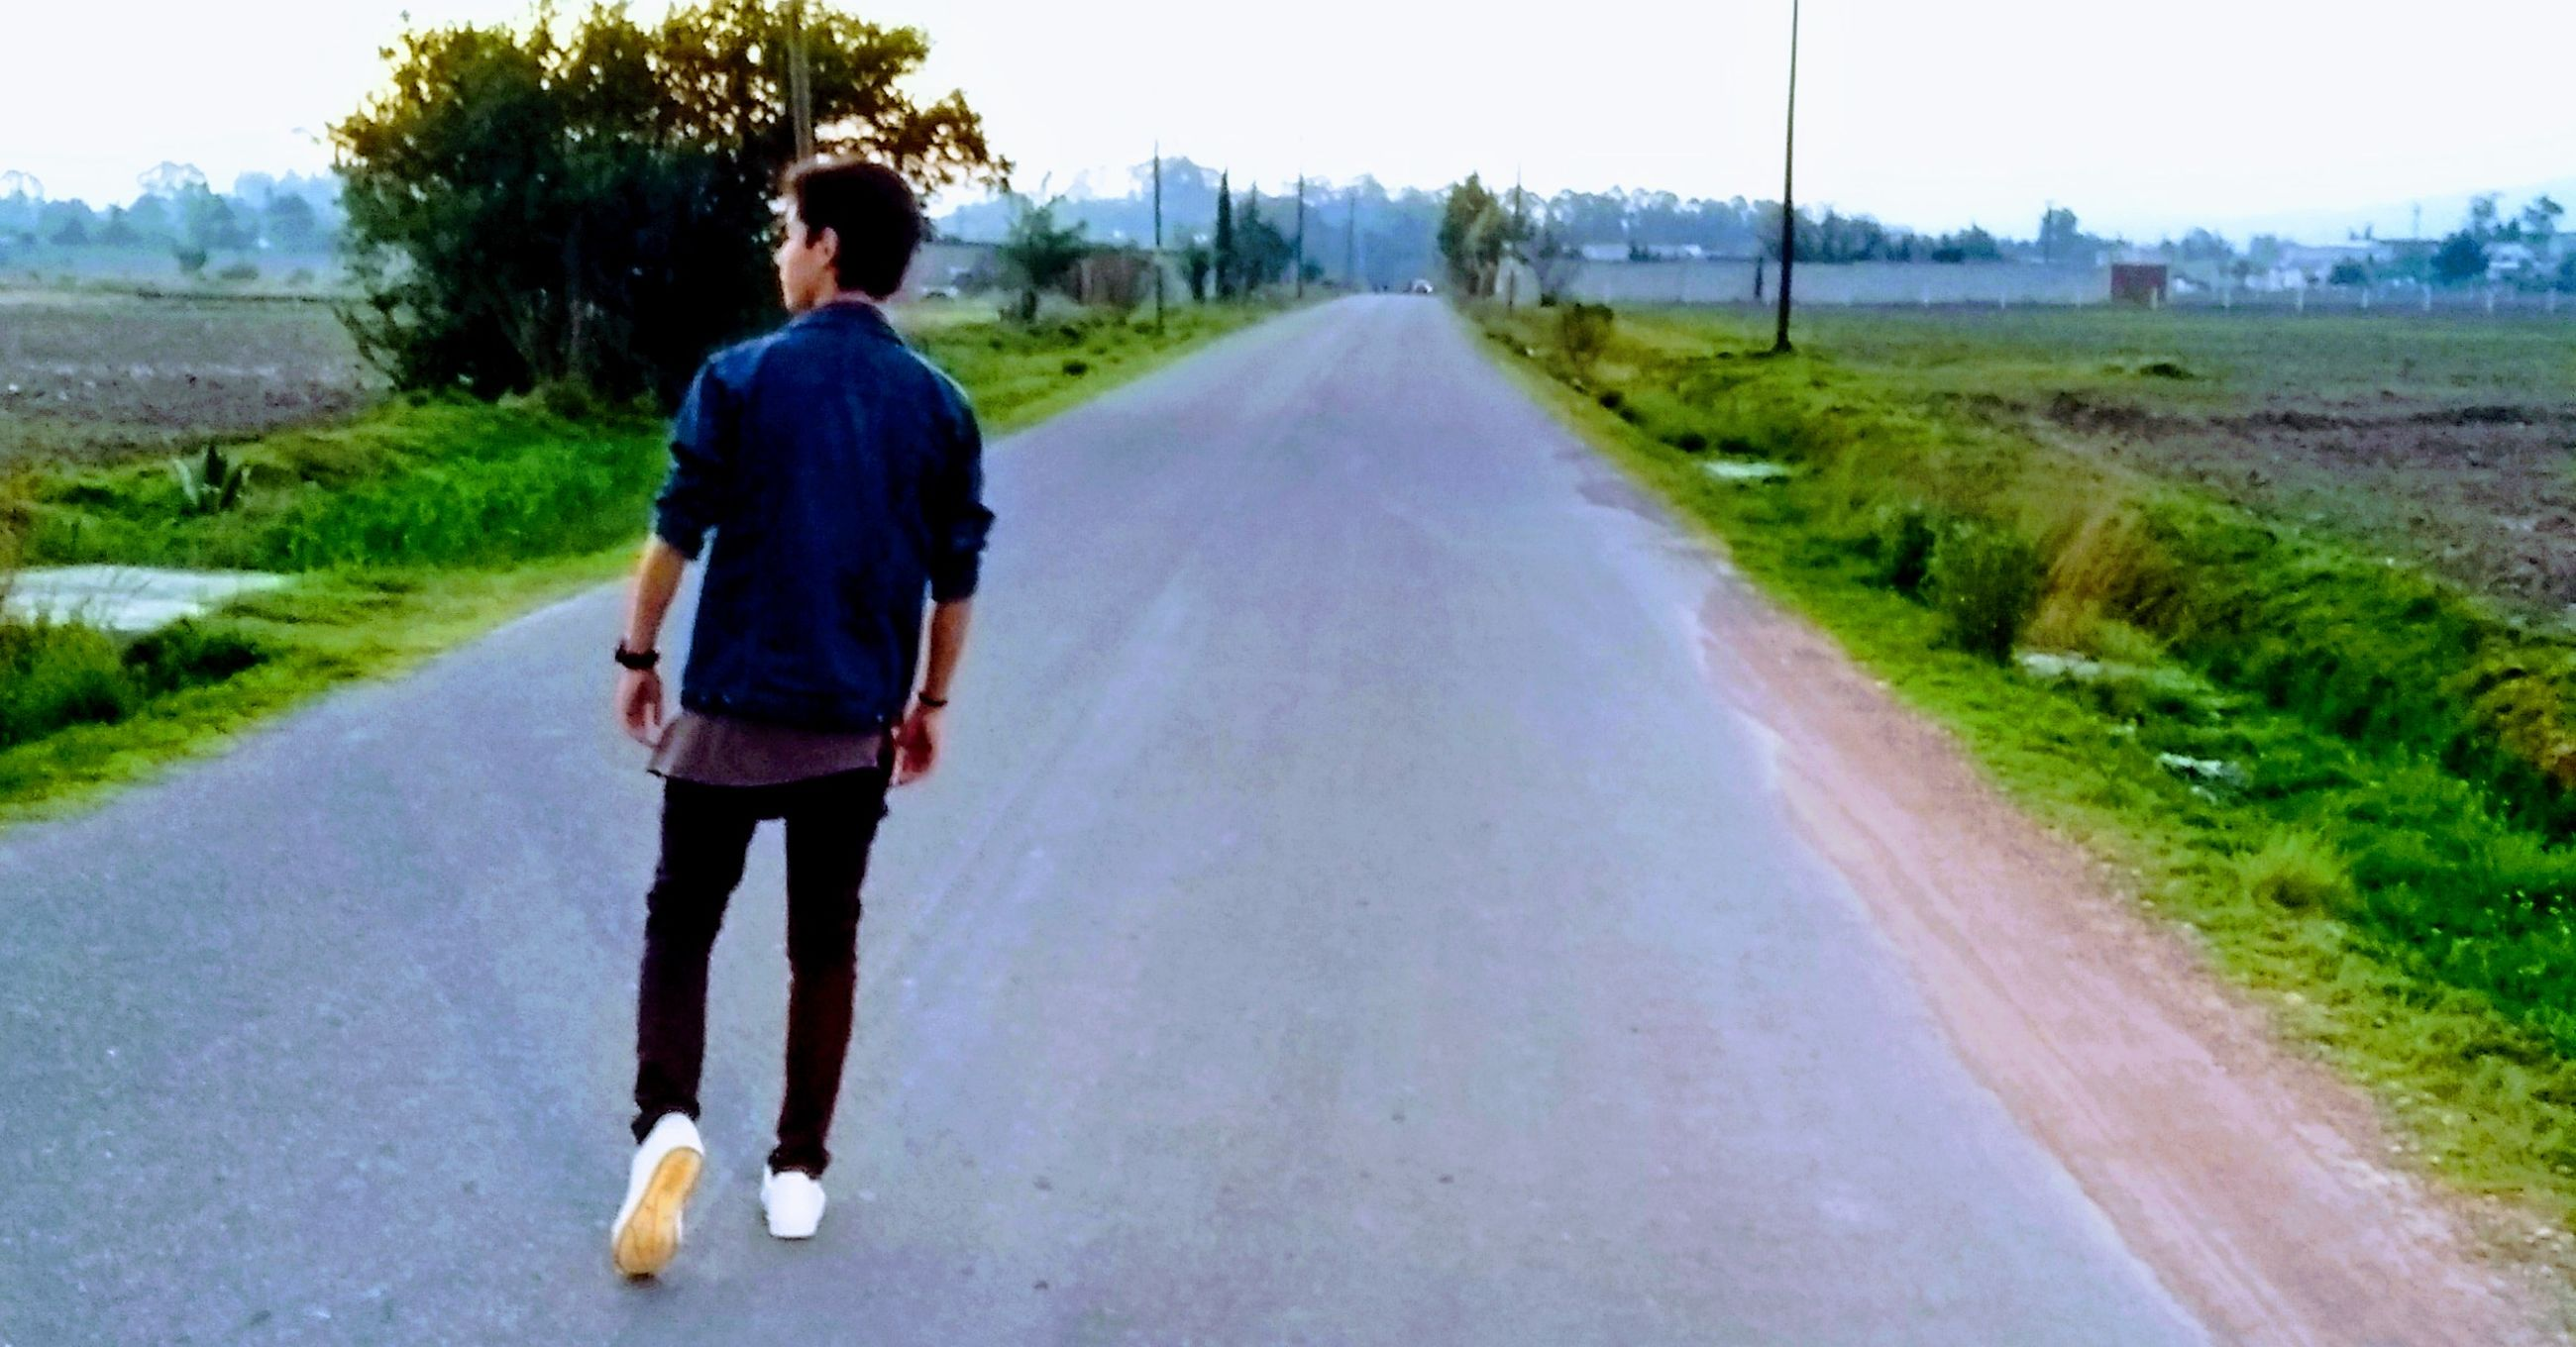 the way forward, road, walking, real people, full length, rear view, casual clothing, lifestyles, transportation, day, leisure activity, young adult, men, one person, outdoors, grass, nature, sky, adult, people